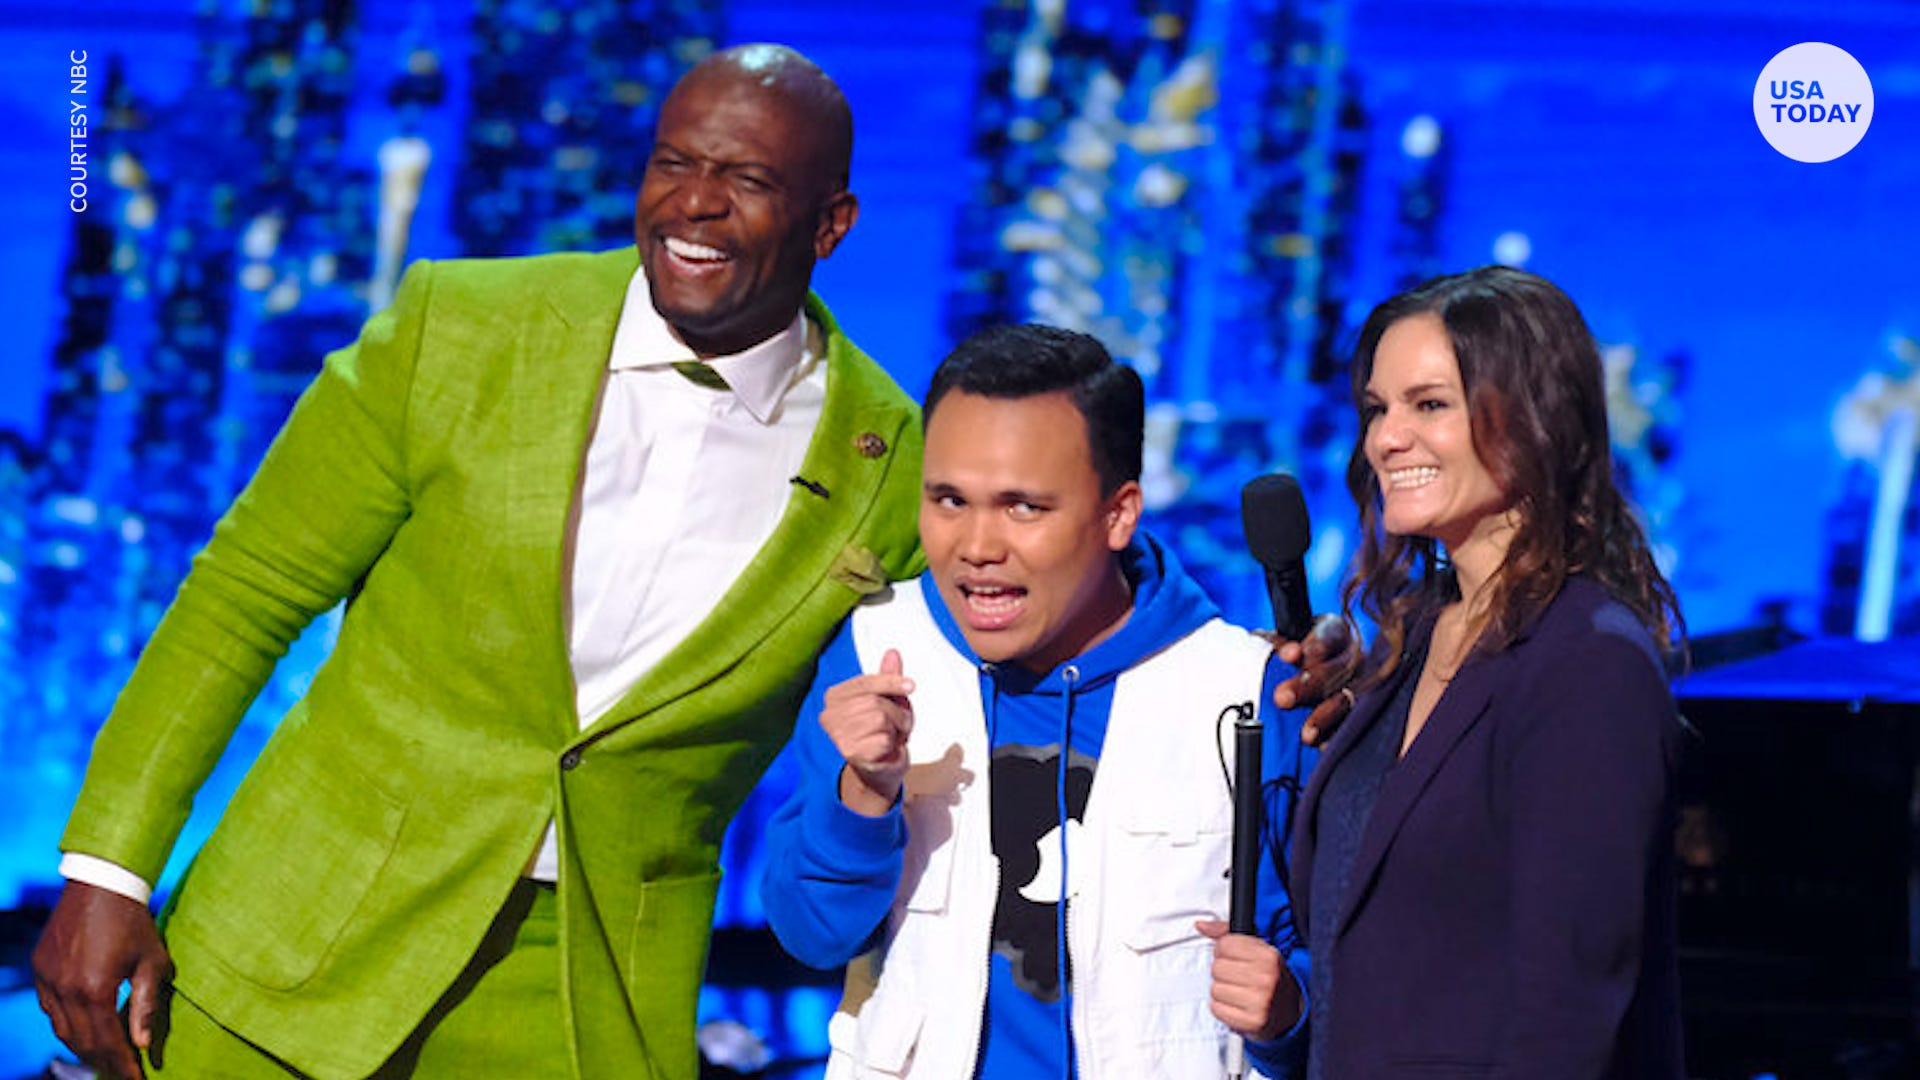 America's Got Talent': Is Kodi Lee moving on to the semifinals?